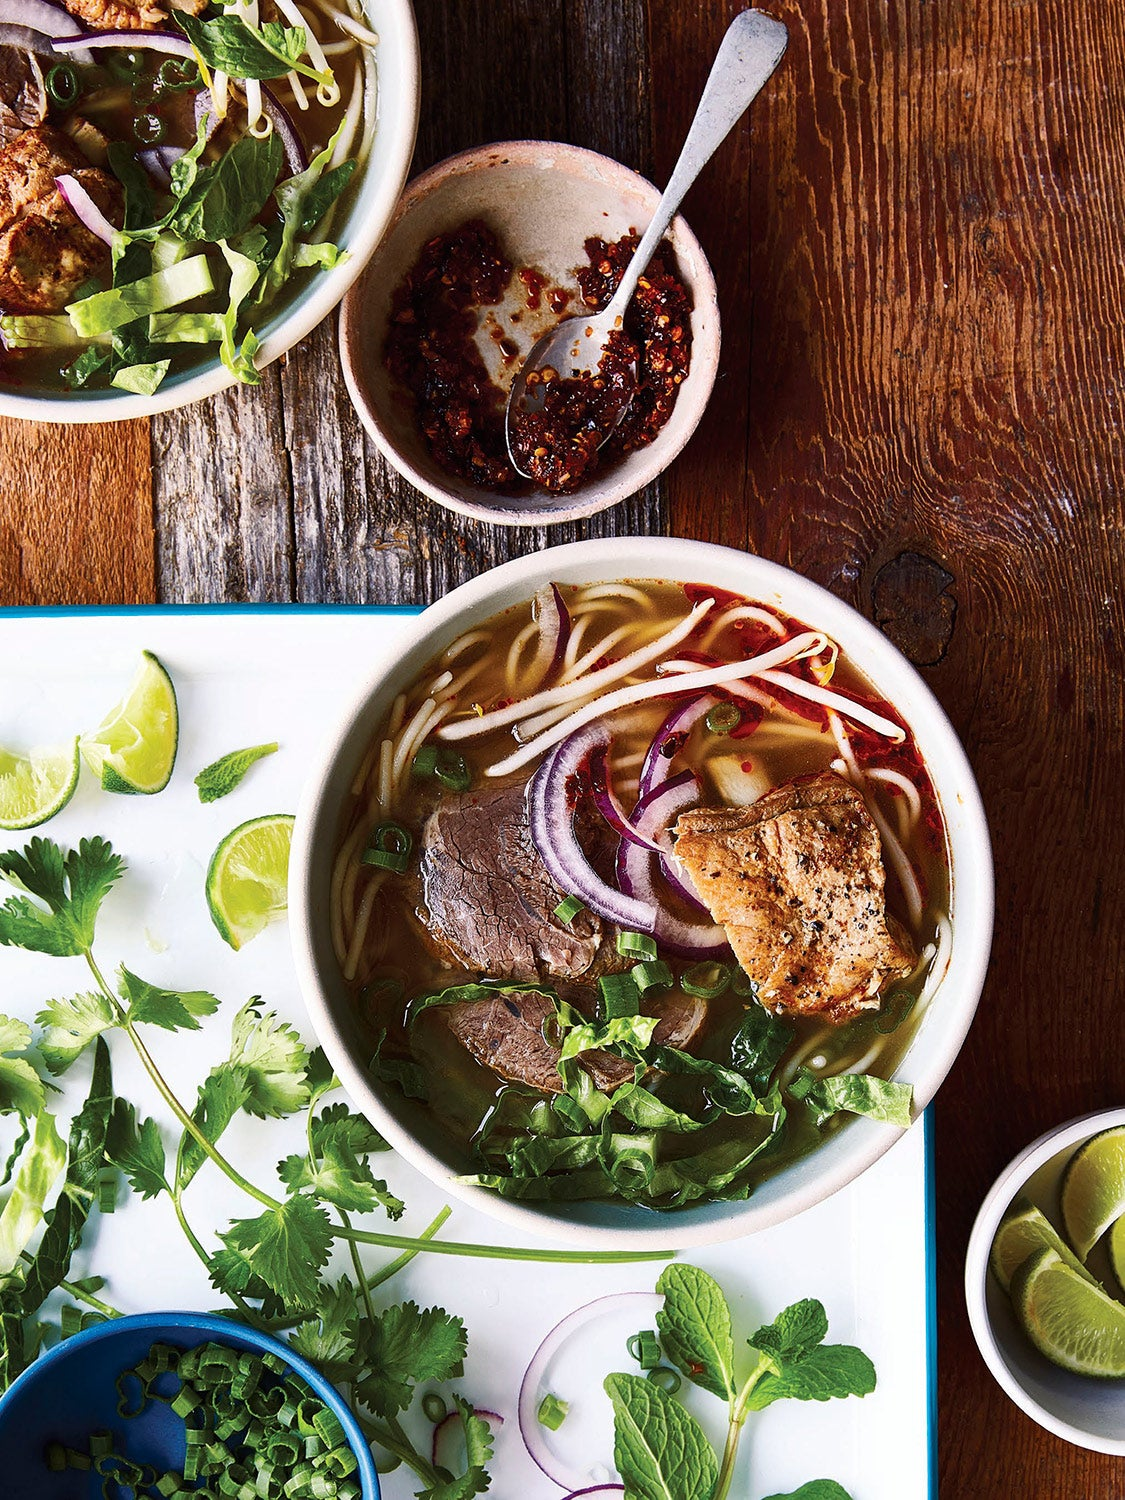 Andrea Nguyen's Latest Cookbook Is a Seminal Work for Vietnamese Cuisine